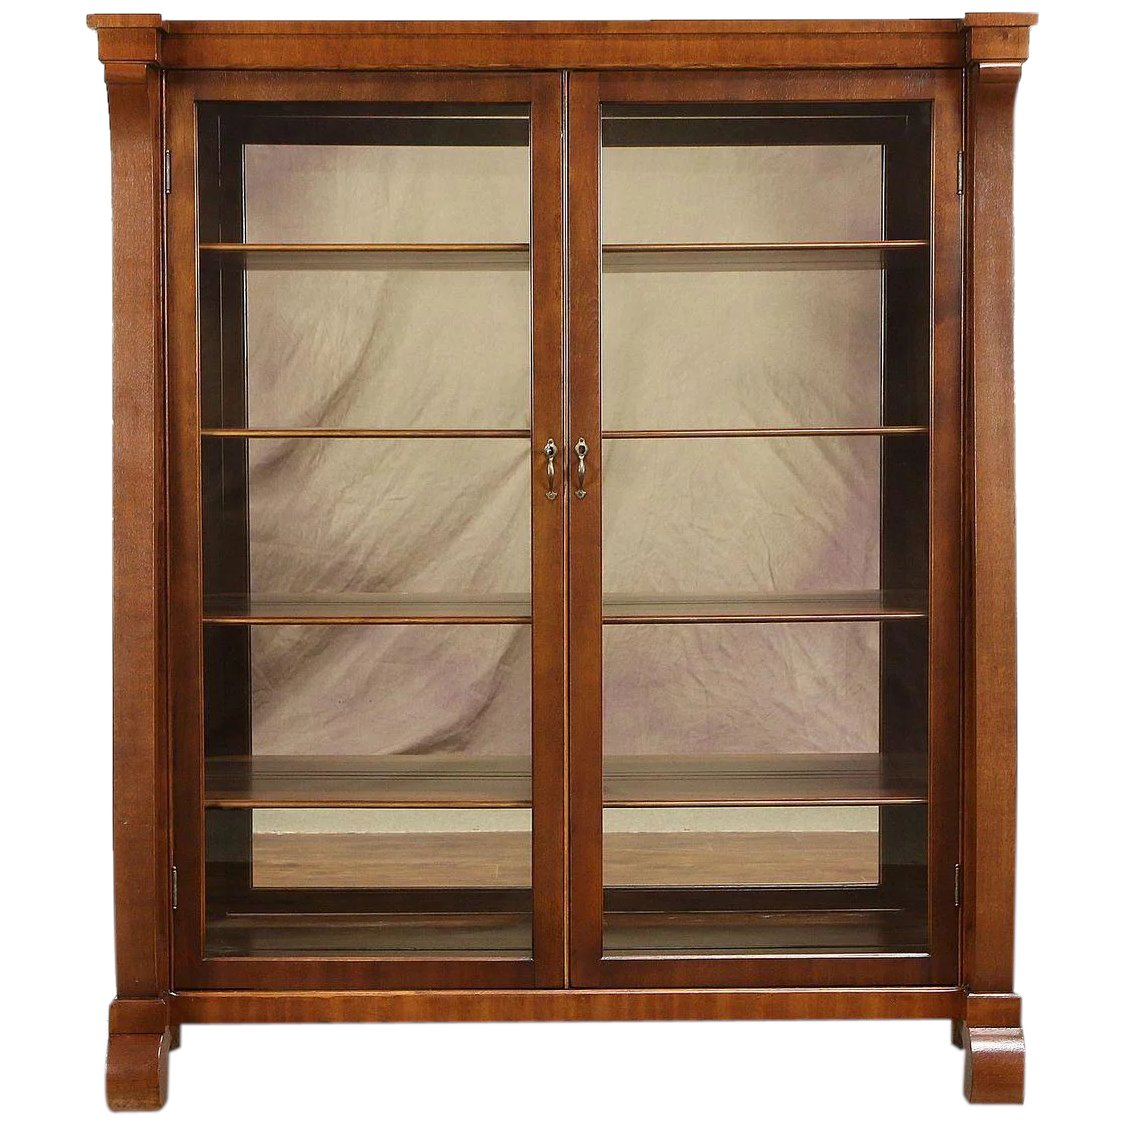 Empire Antique Mahogany Bookcase Or Curio Cabinet Glass Doors Harp Gallery Antique Furniture Ruby Lane